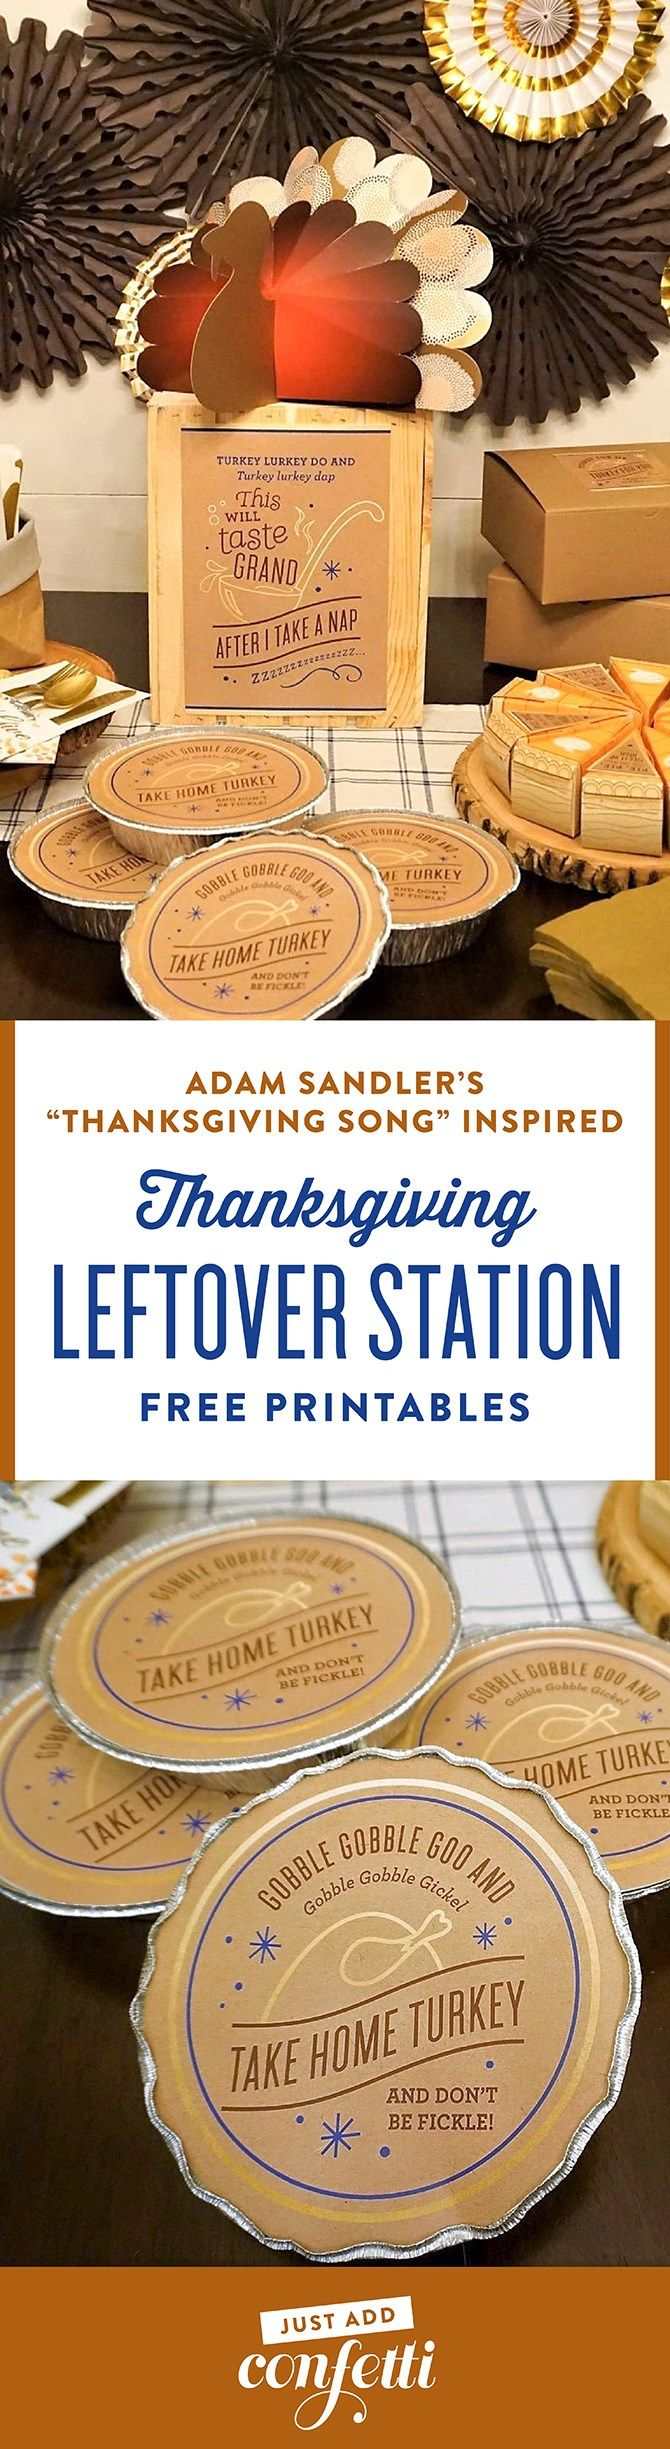 Thanksgiving leftover station, thanksgiving leftover printable tags, leftover printables, leftover free printables, free printables, just add confetti, just add confetti free printables, adam sandler, thanksgiving song, turkey for me, turkey for you, legally crafty blog, collaboration, blogger collaboration